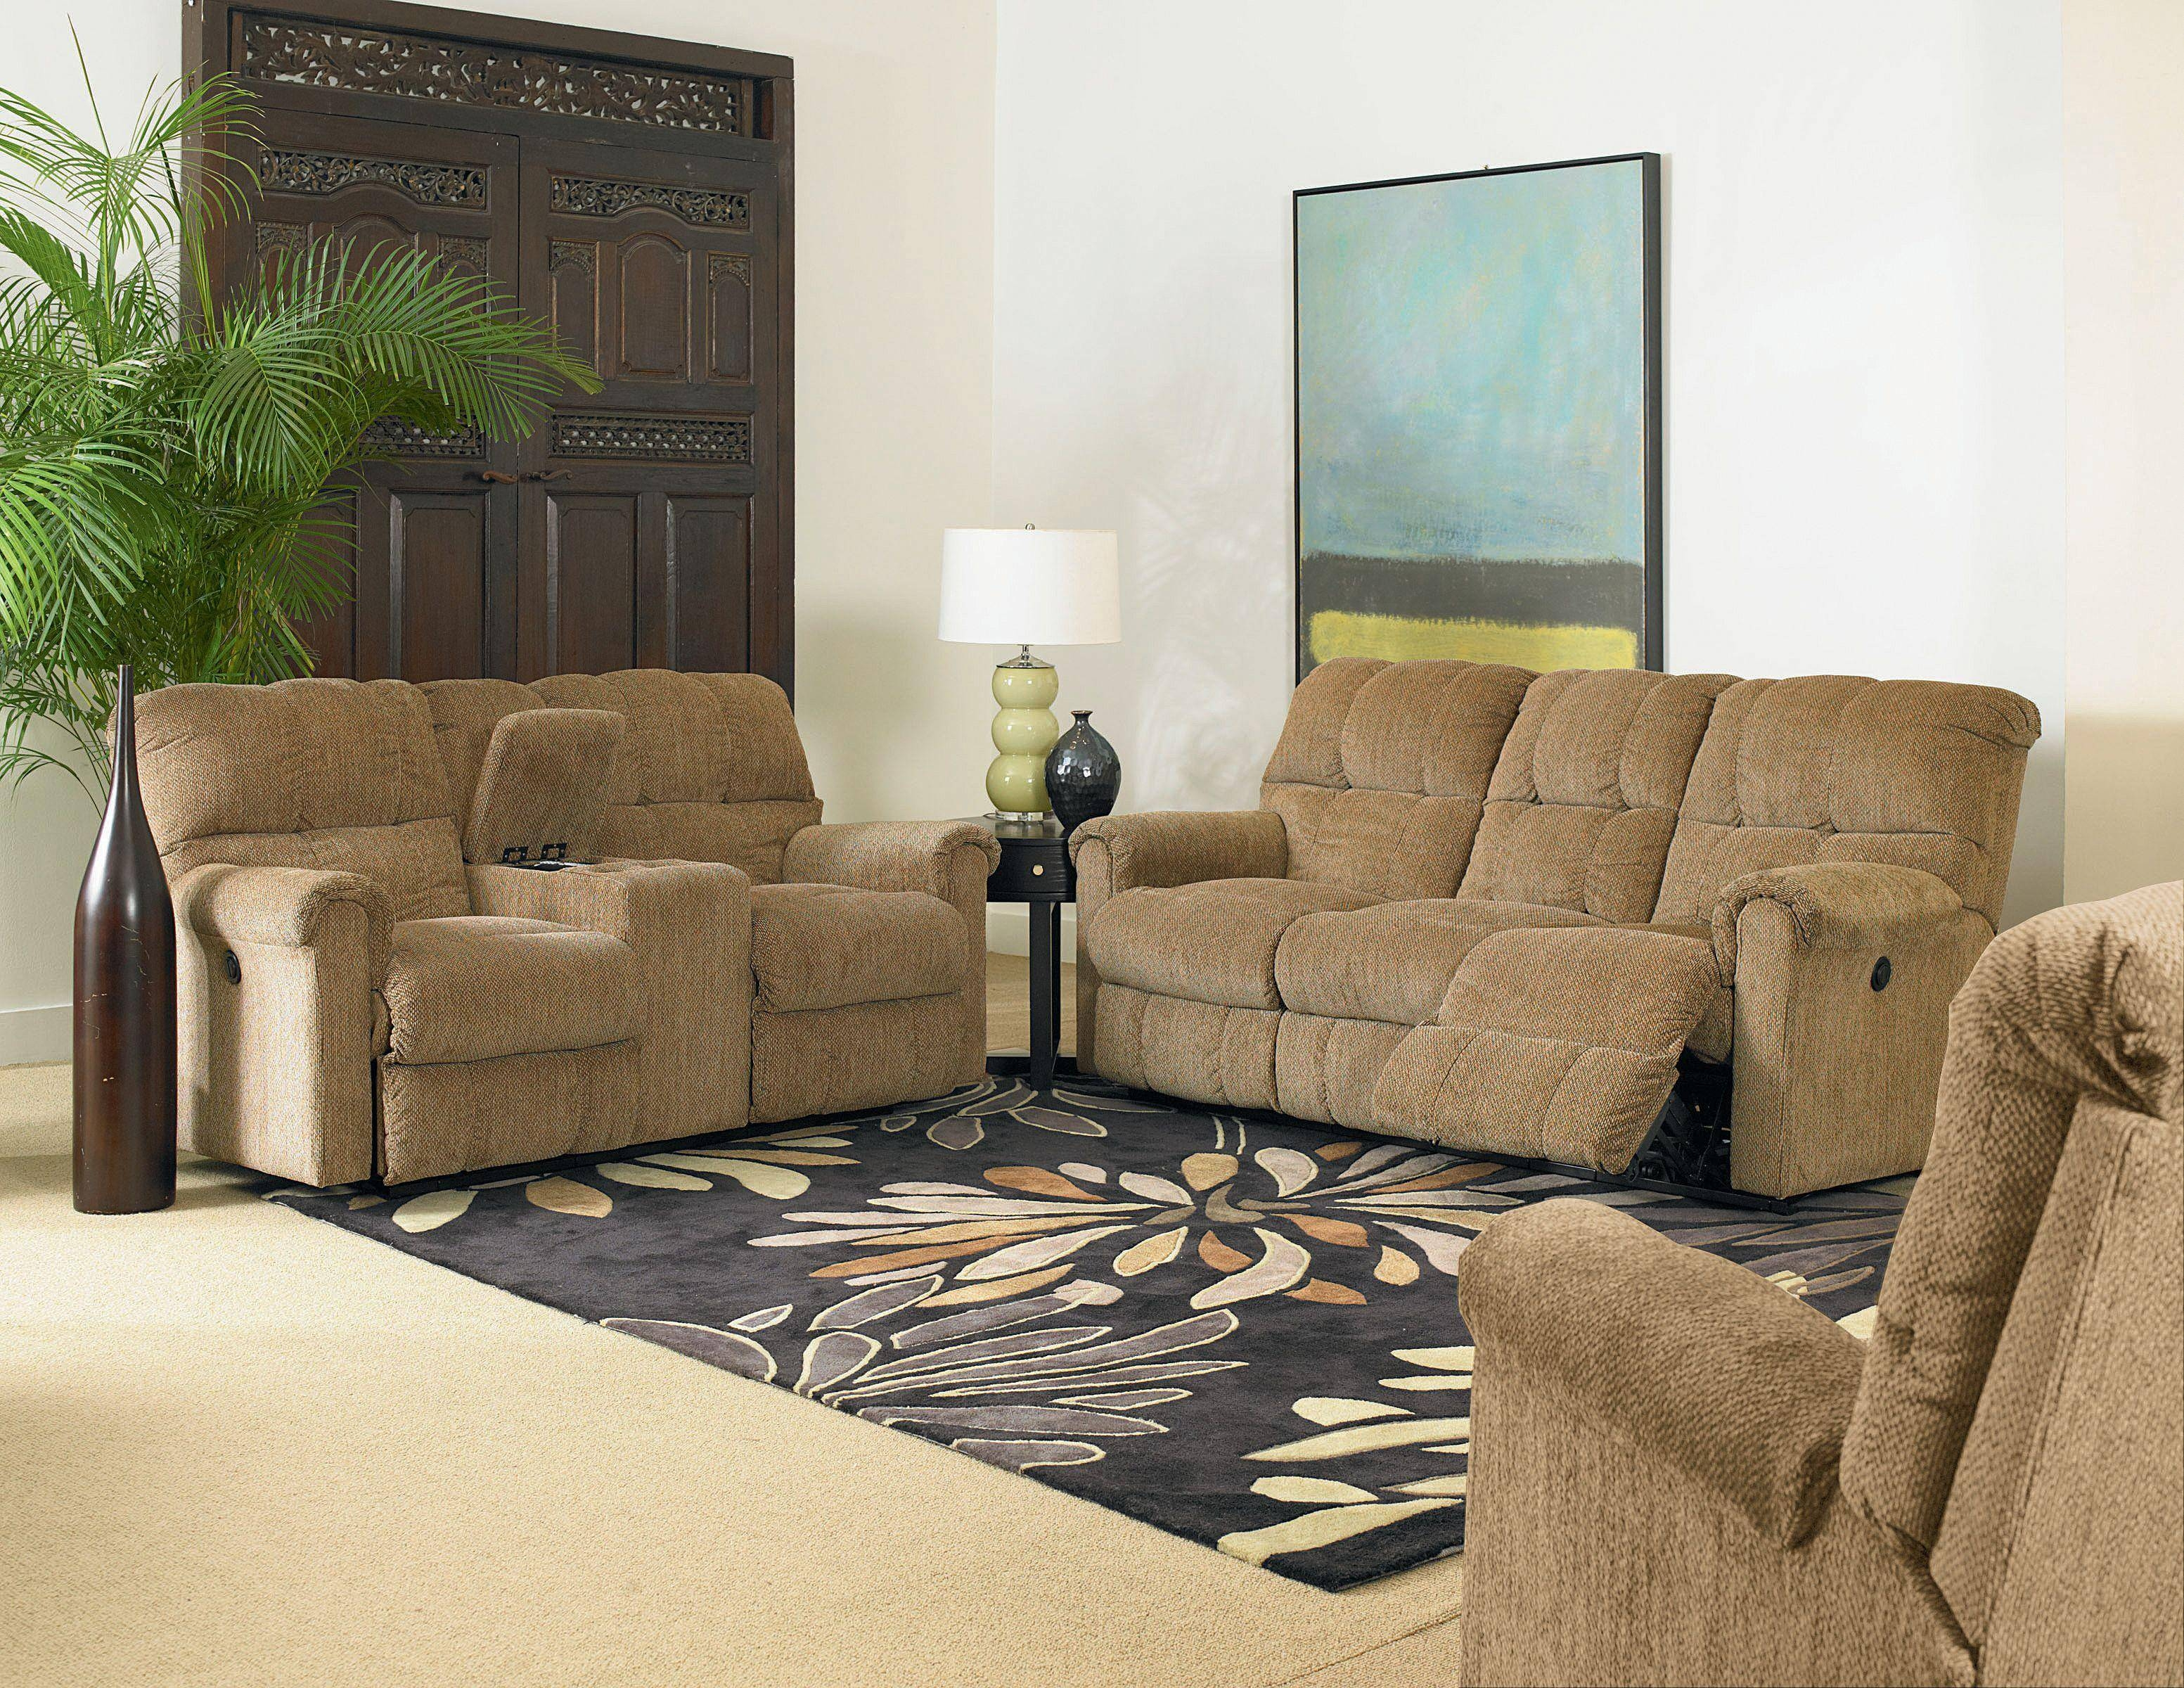 durham sofa by birch lane sectional sofas free shipping no tax 25 best ideas of furniture